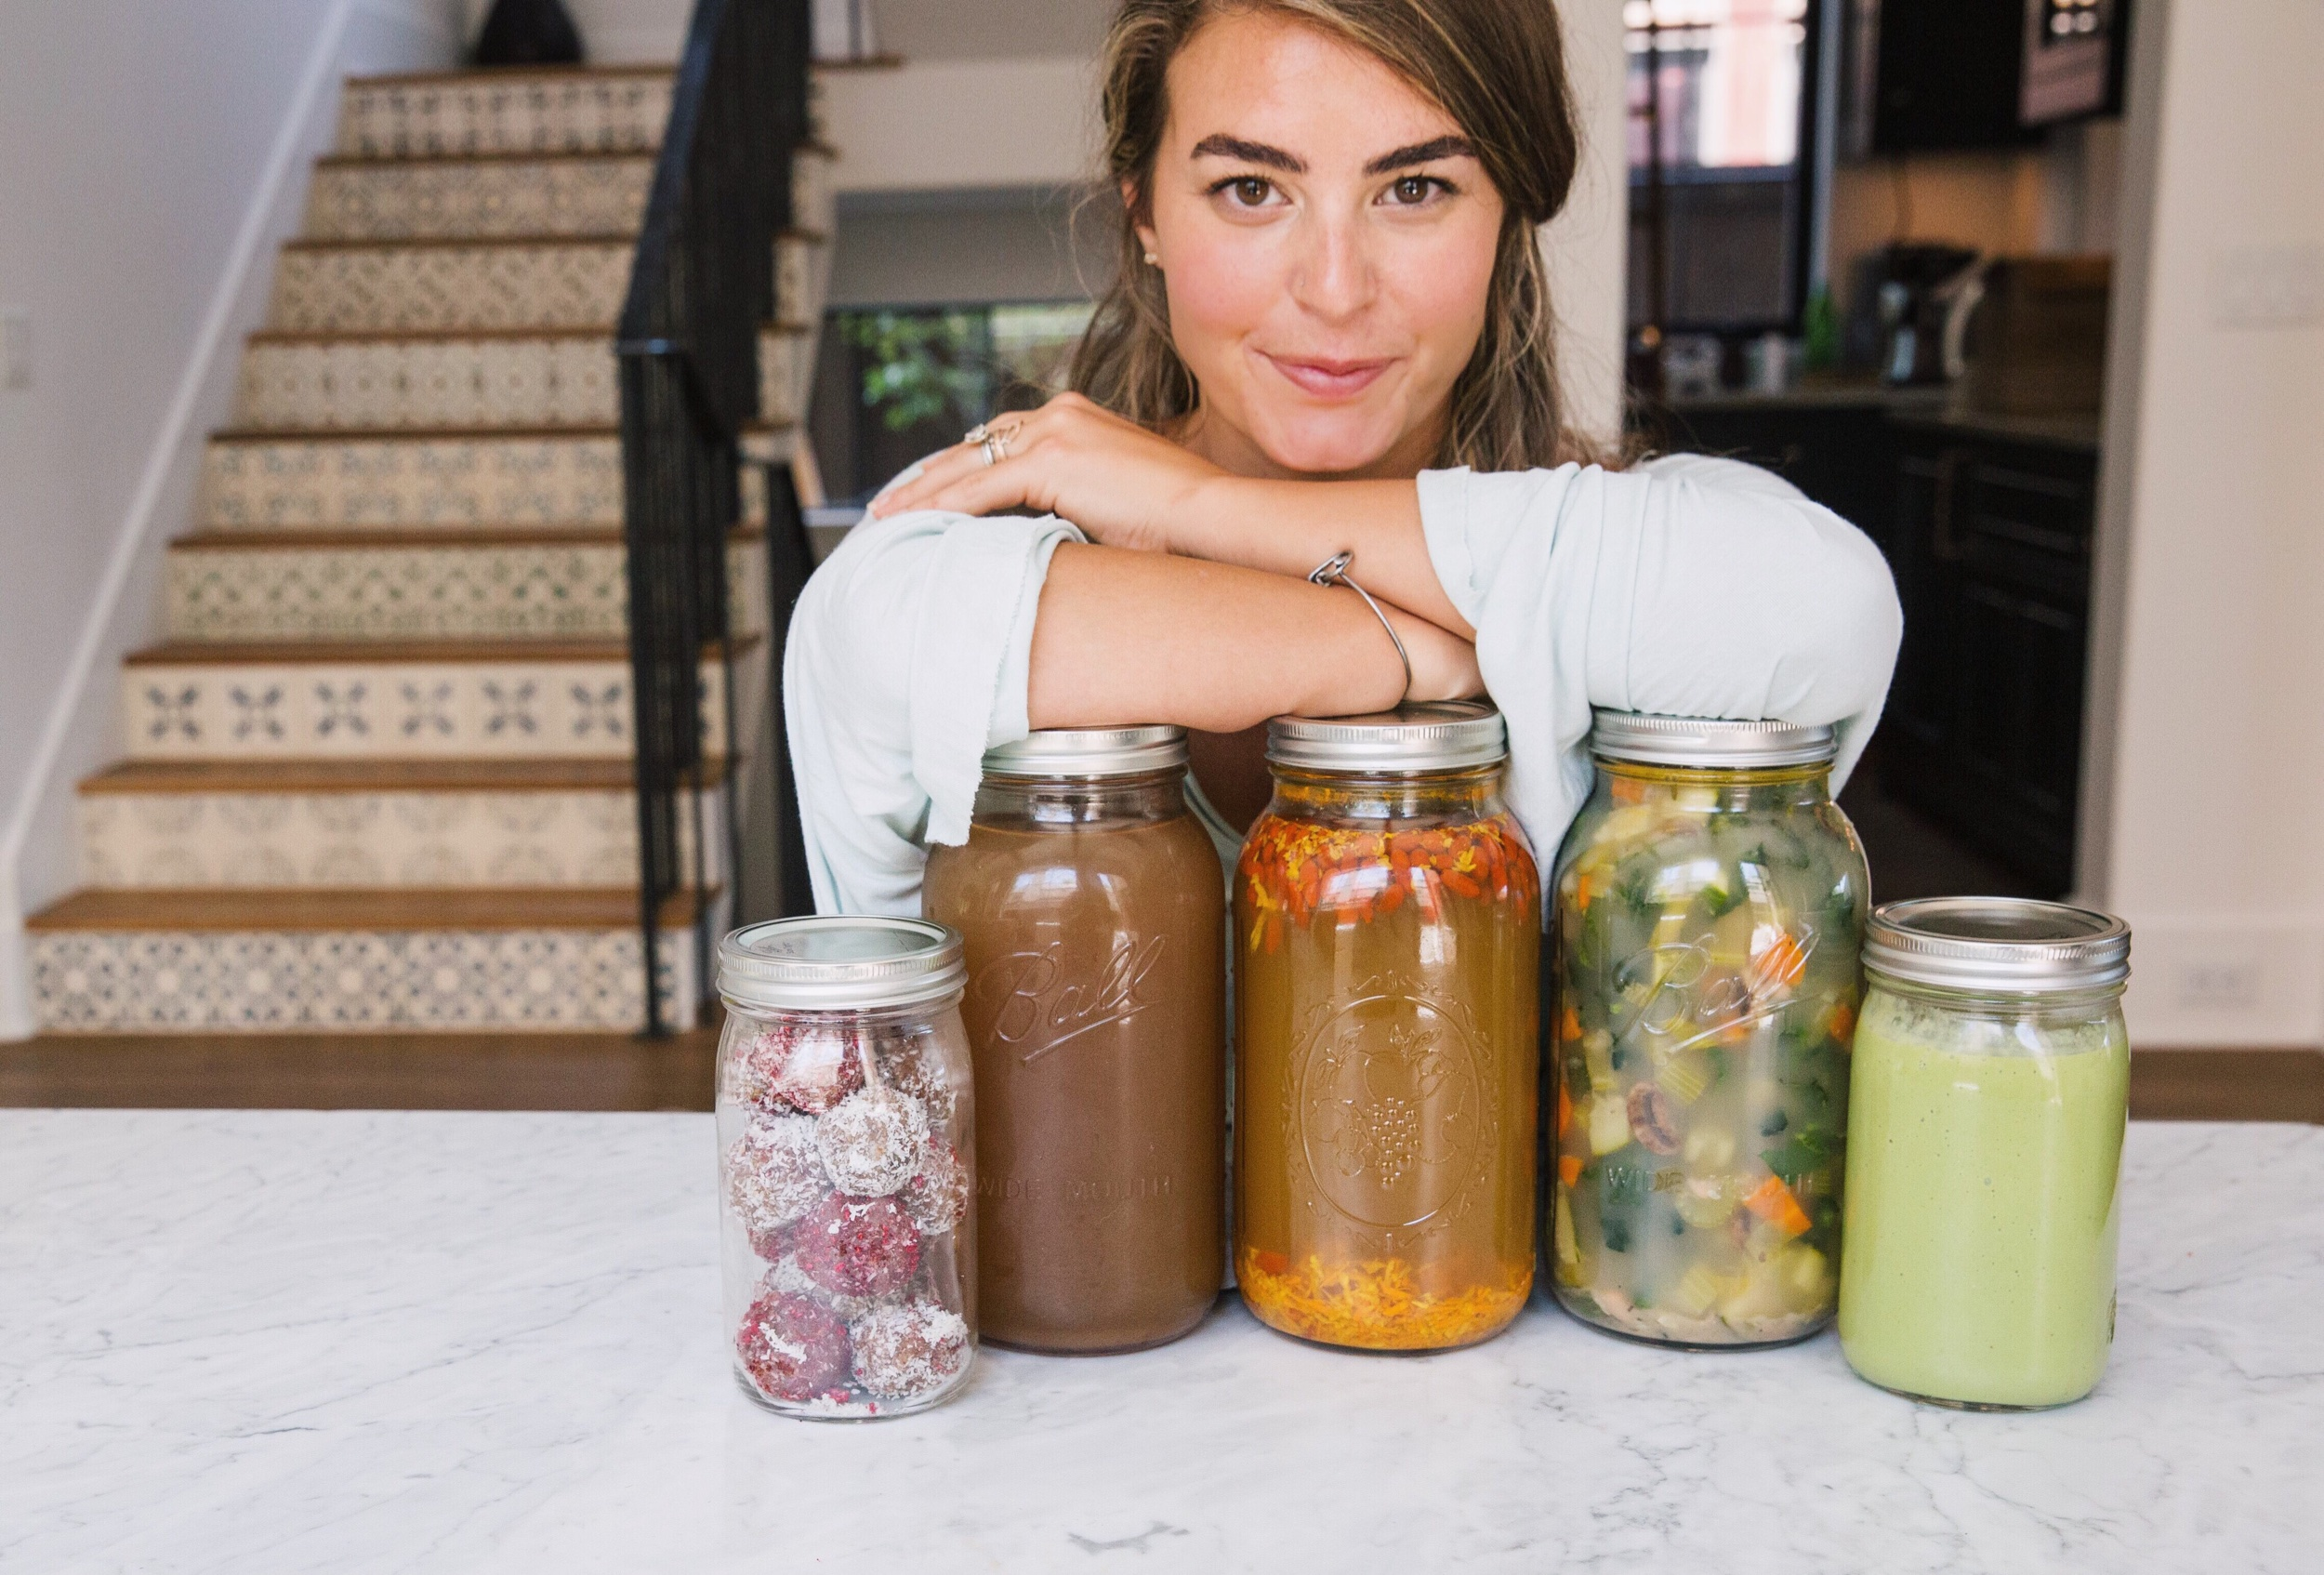 everything is packaged in glass mason jars